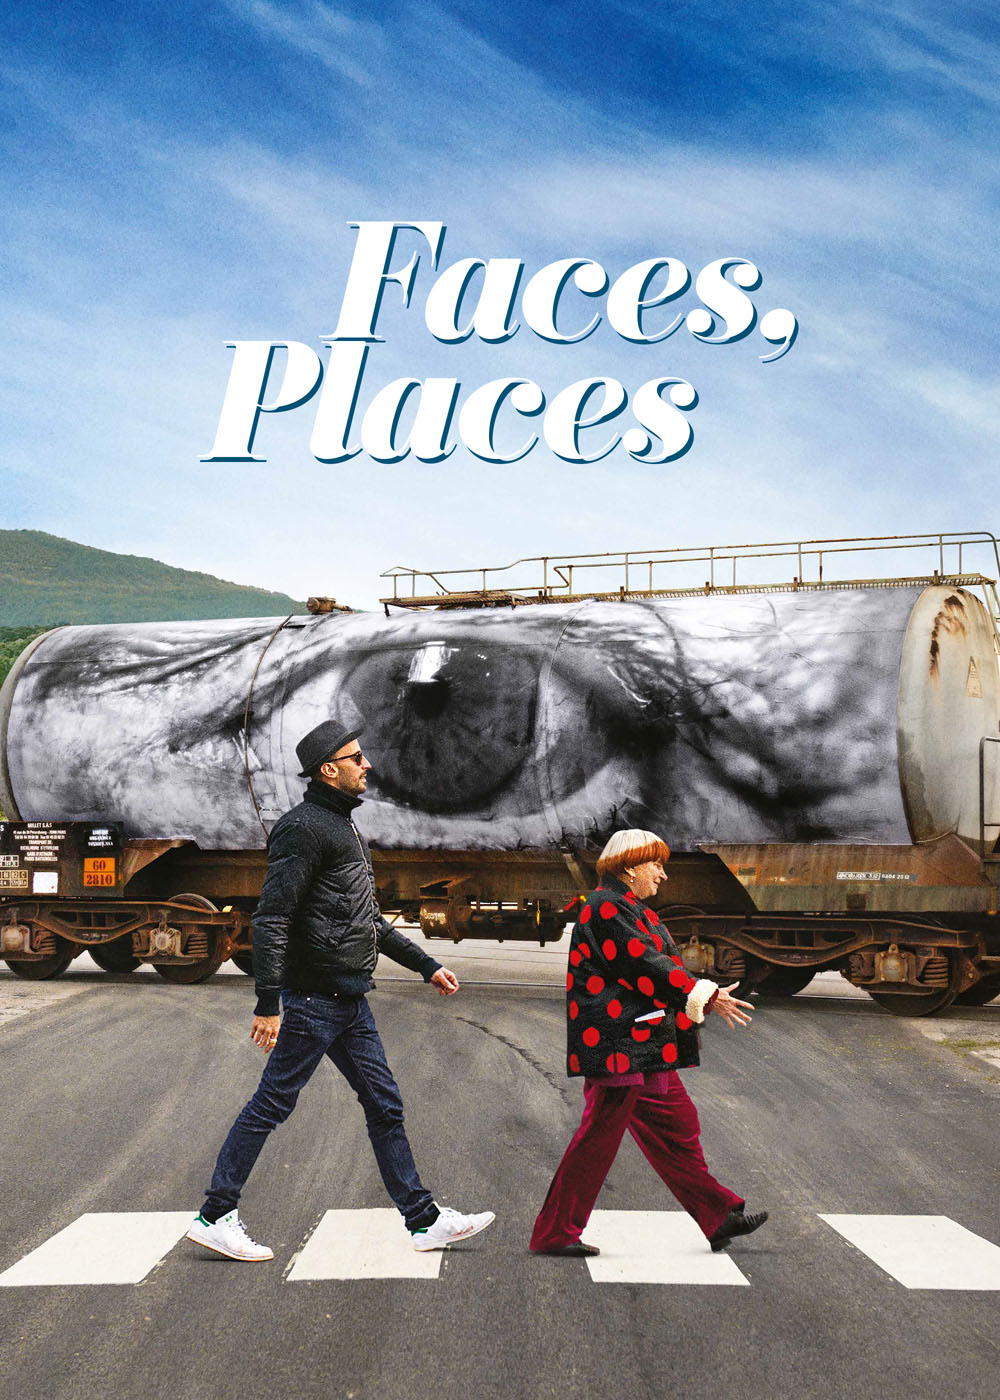 Faces, Places